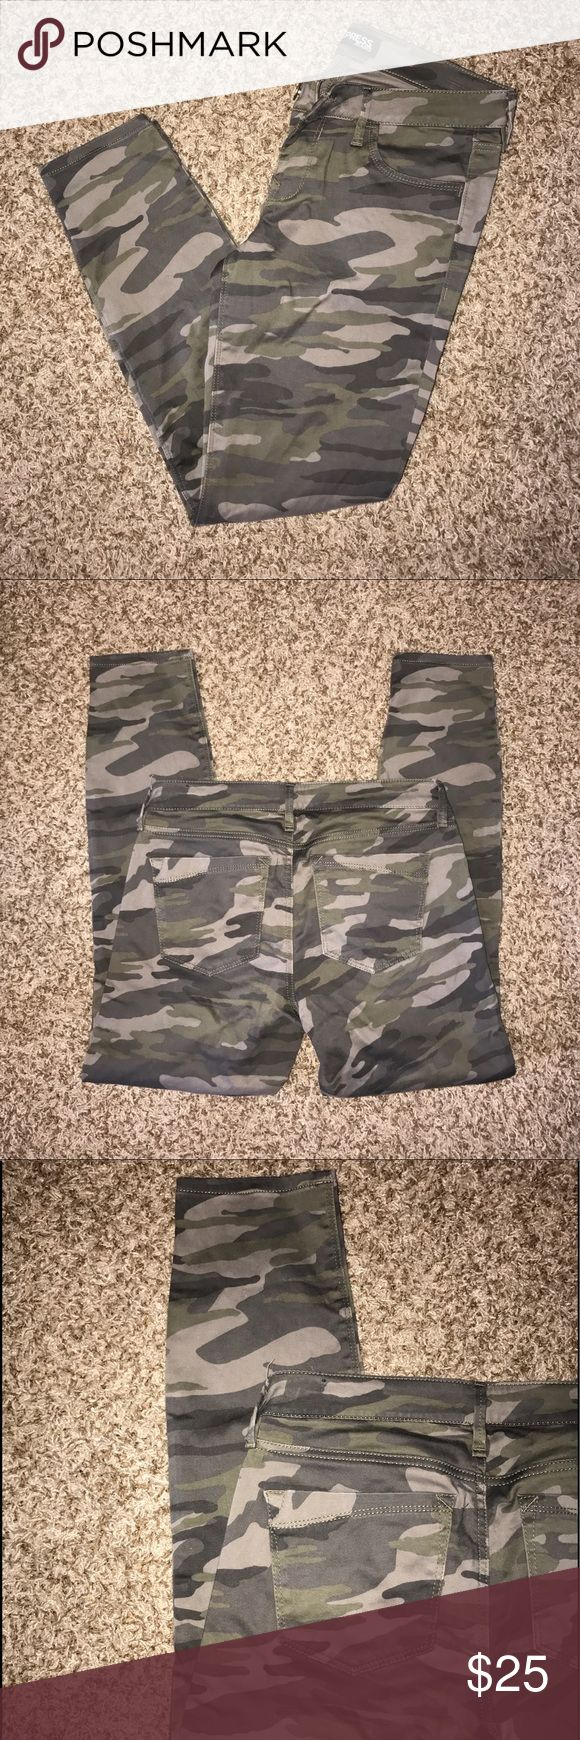 Express Camo Skinny Jean Perfect condition. Low rise. Express camo skinny jean. Sz 4- true to size Express Jeans Skinny